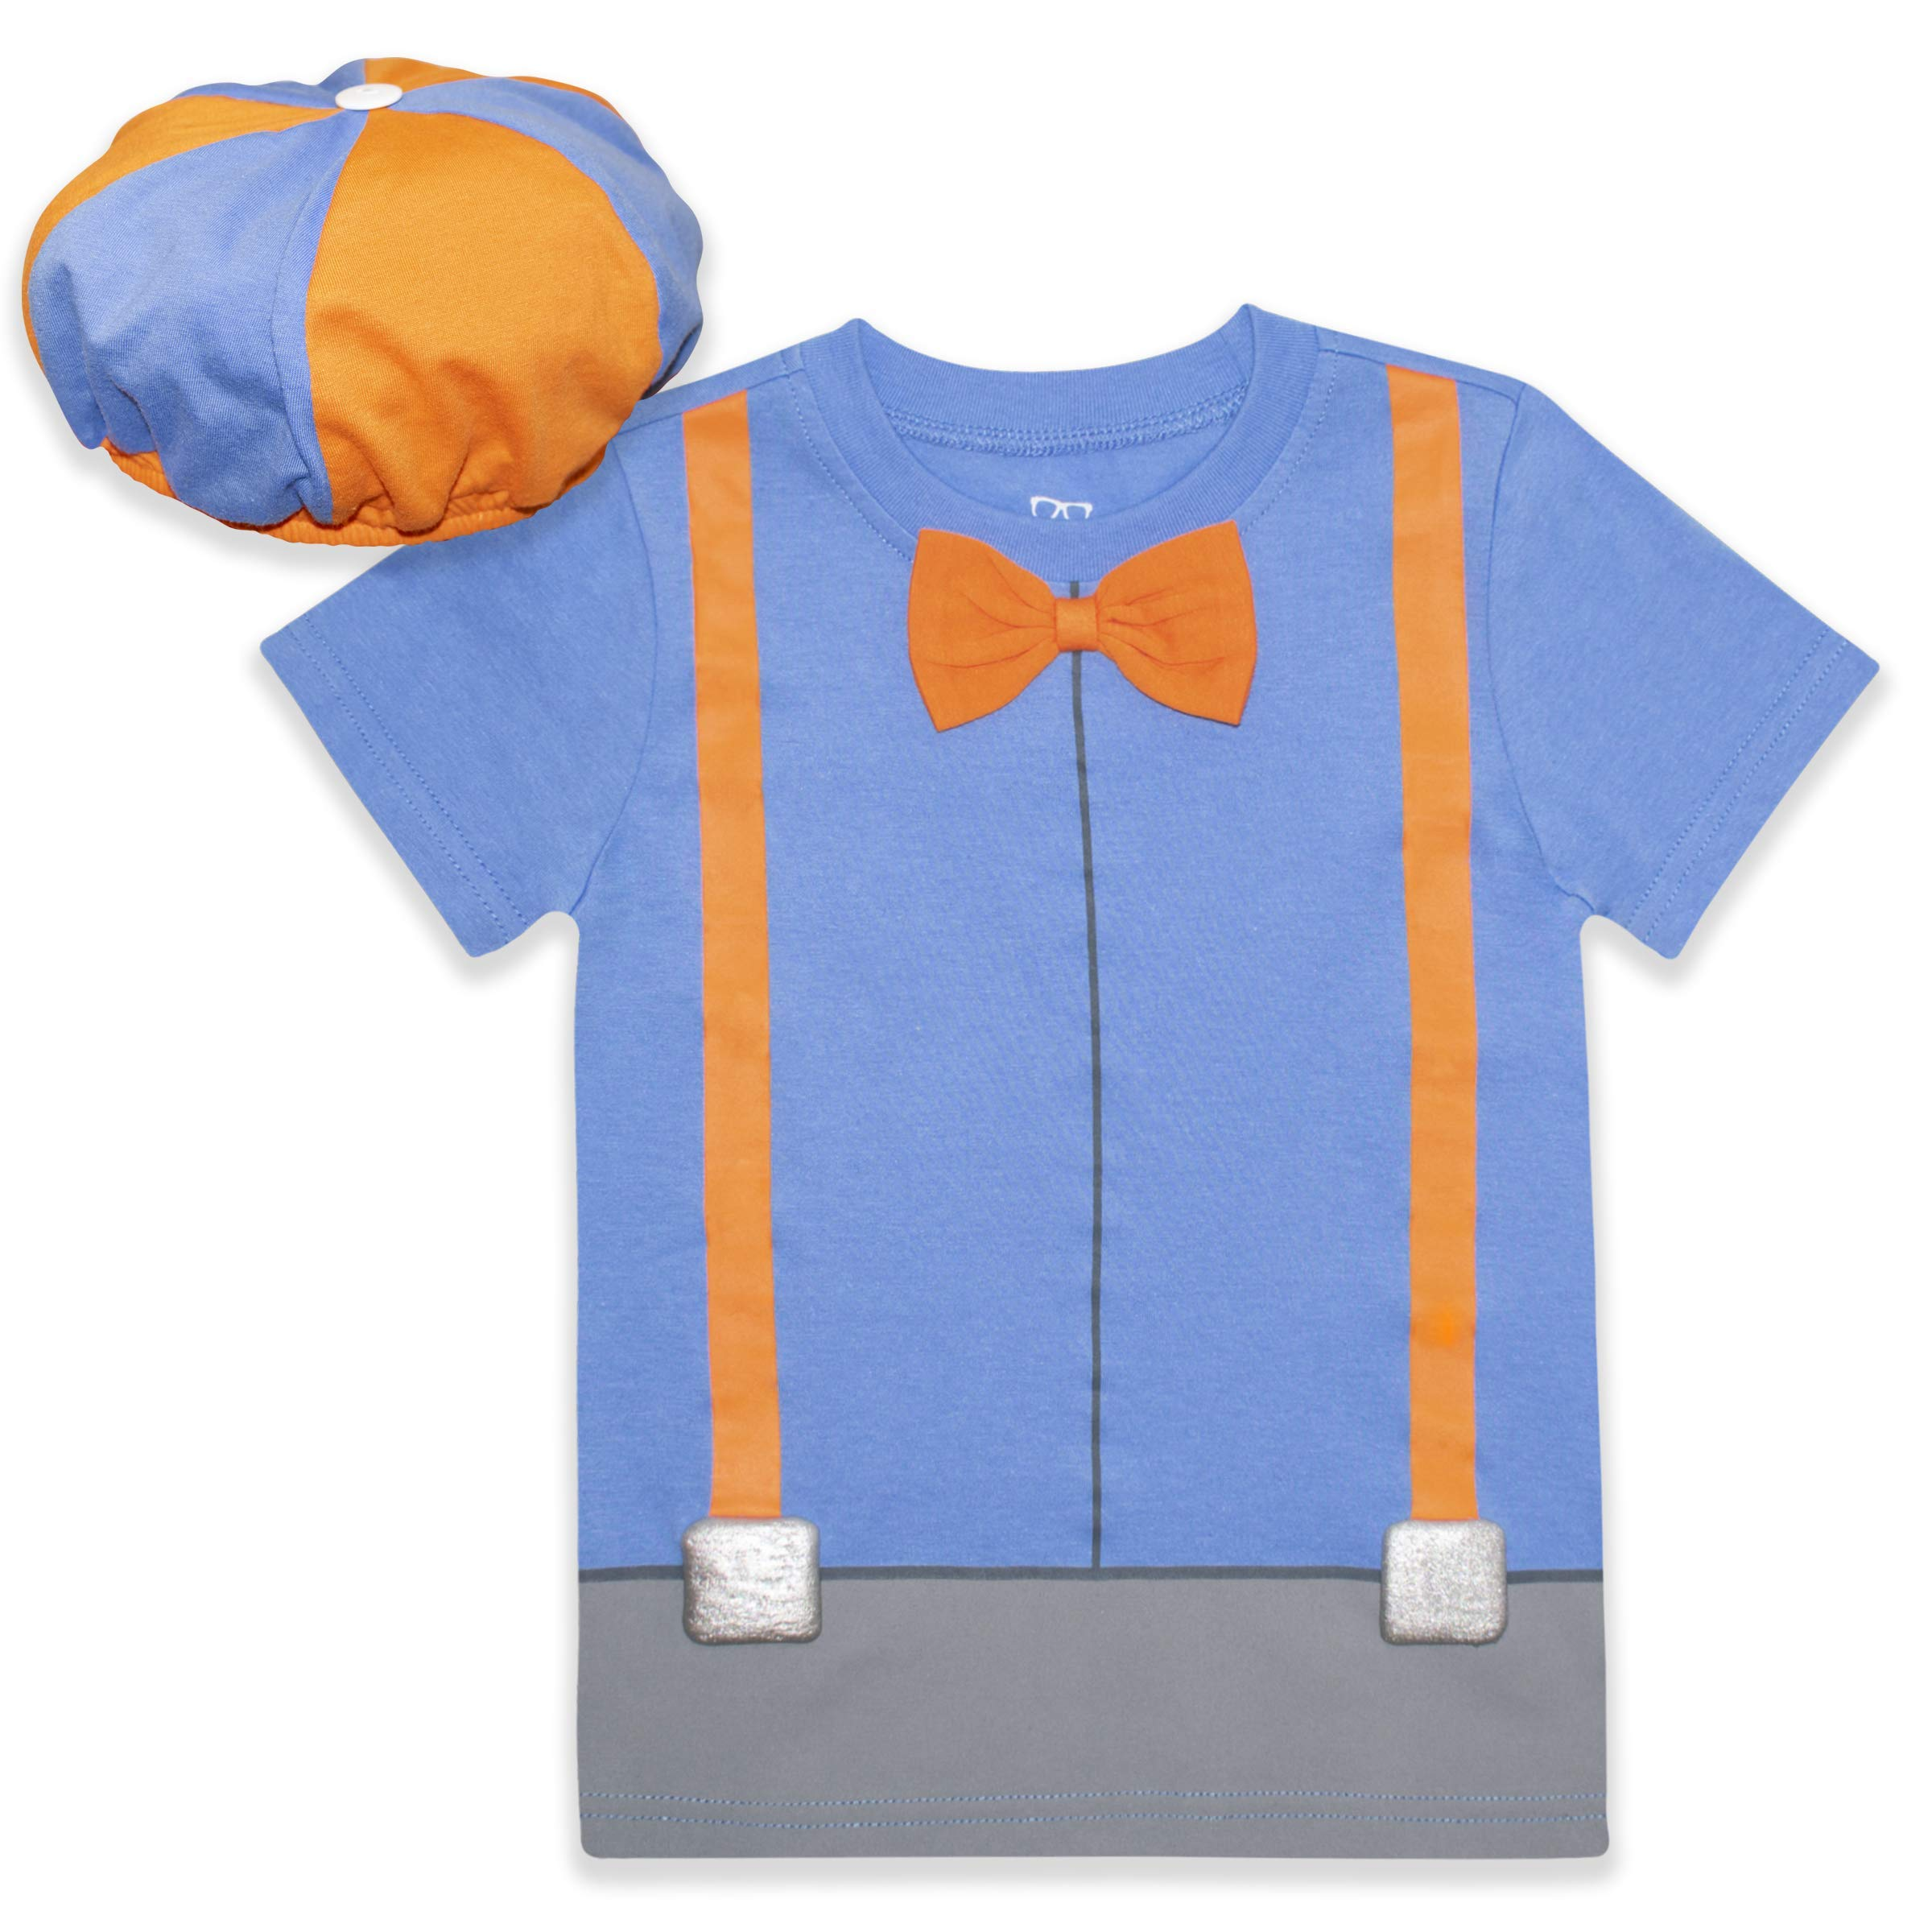 Blippi Roleplay Shirt and Hat Roleplay Set with Printed Bow Tie and Suspenders